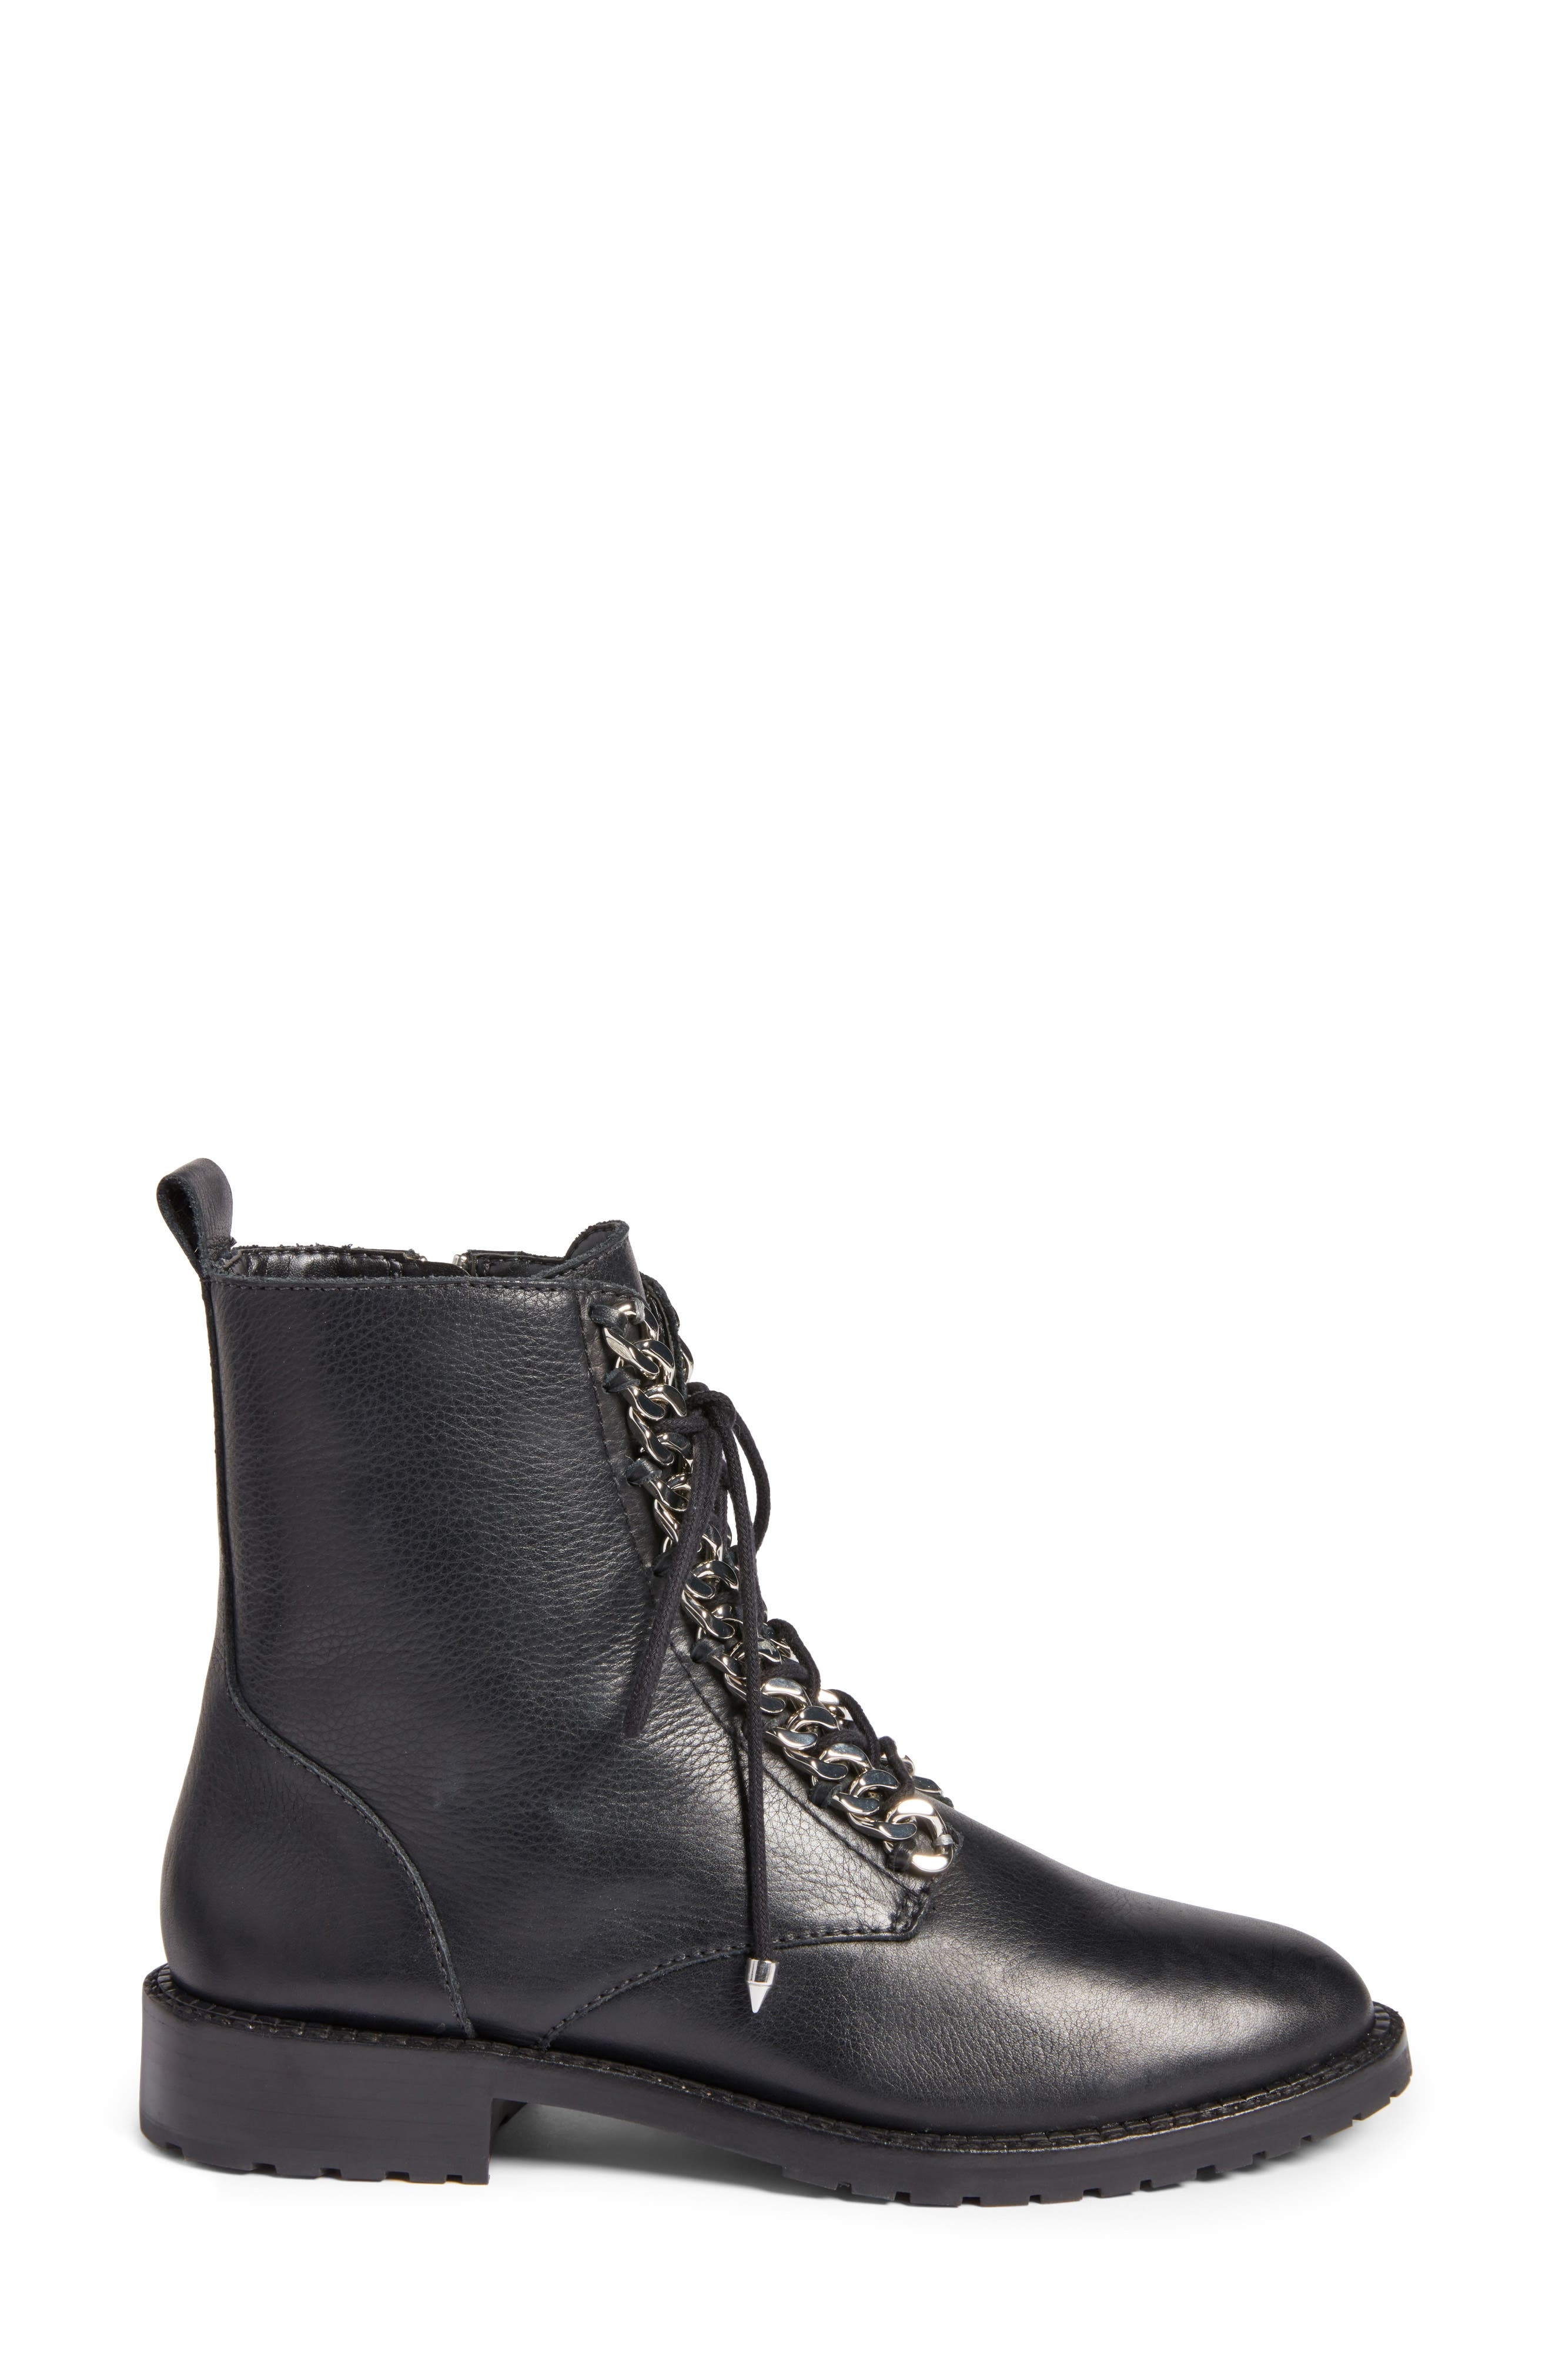 Gian Combat Boot,                             Alternate thumbnail 3, color,                             Black Leather